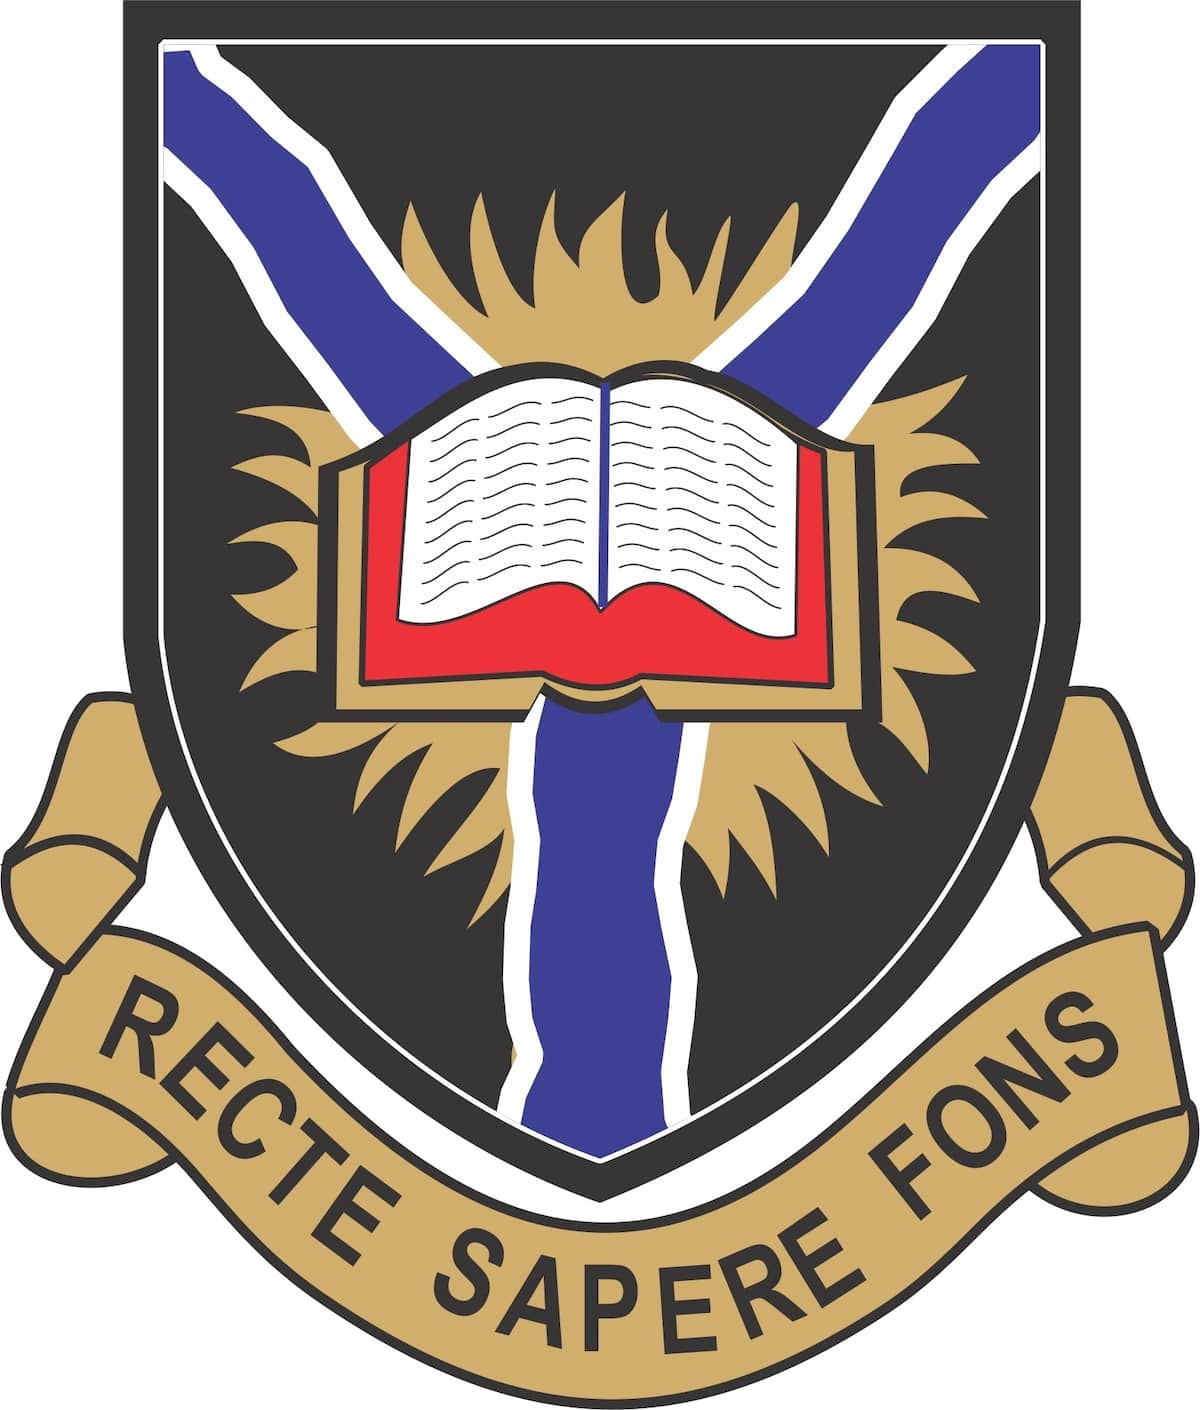 Requirements for a masters degree in University of Ibadan